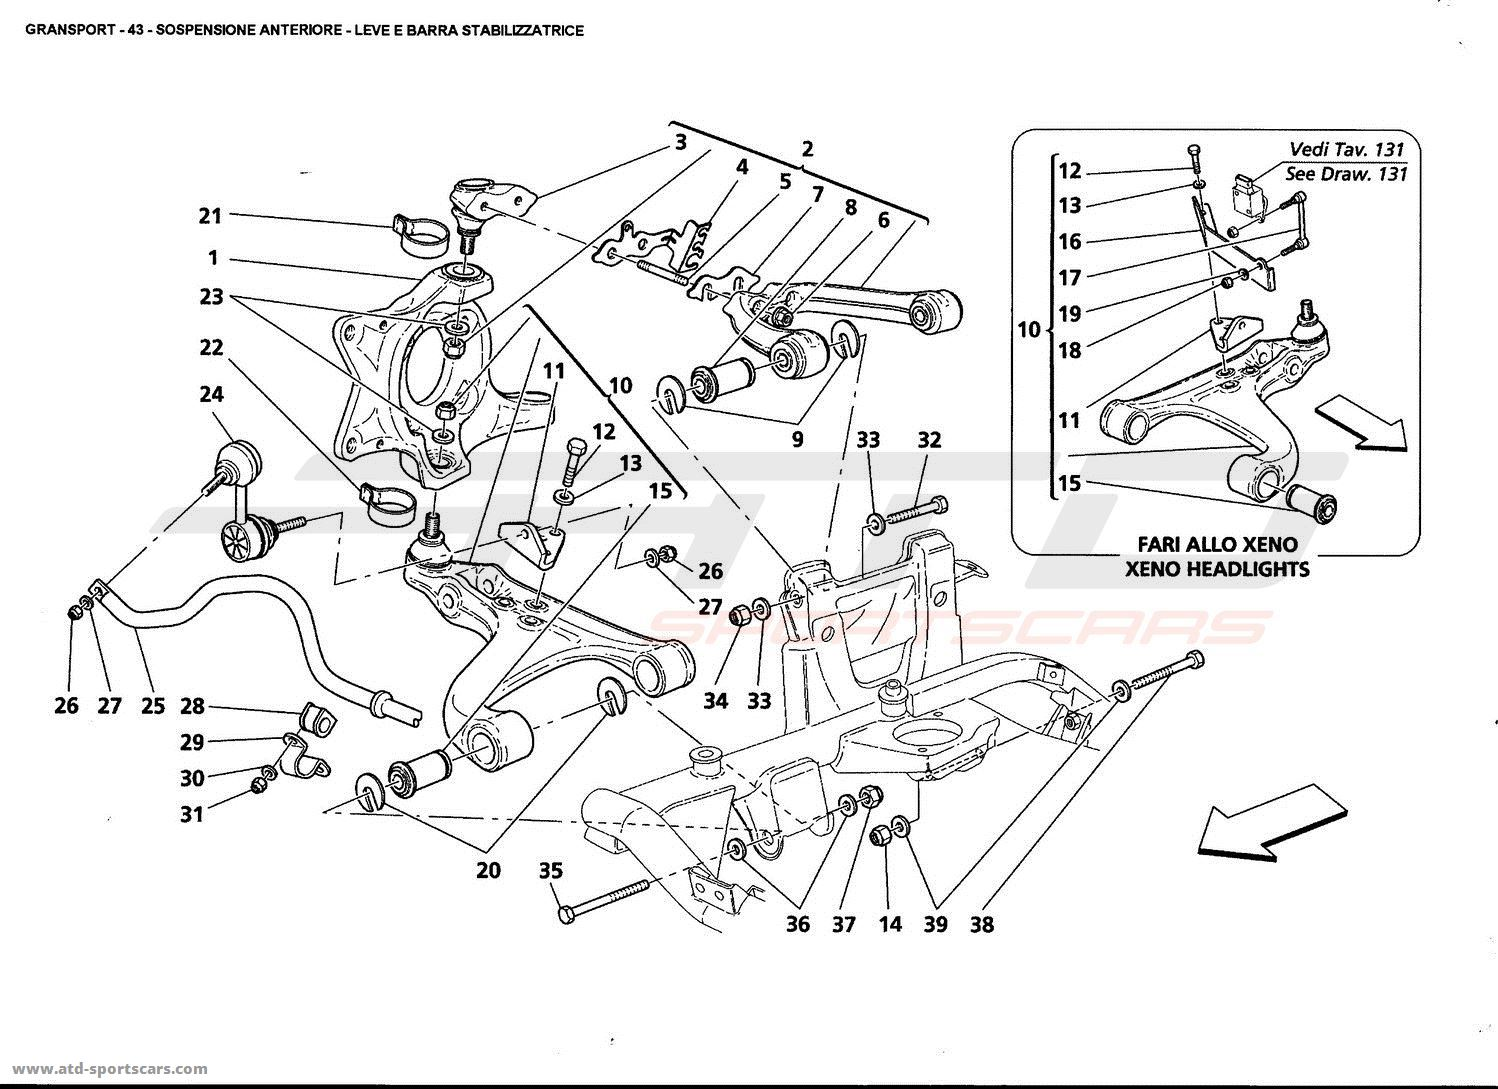 Maserati Gransport Undercarriage Parts At Atd